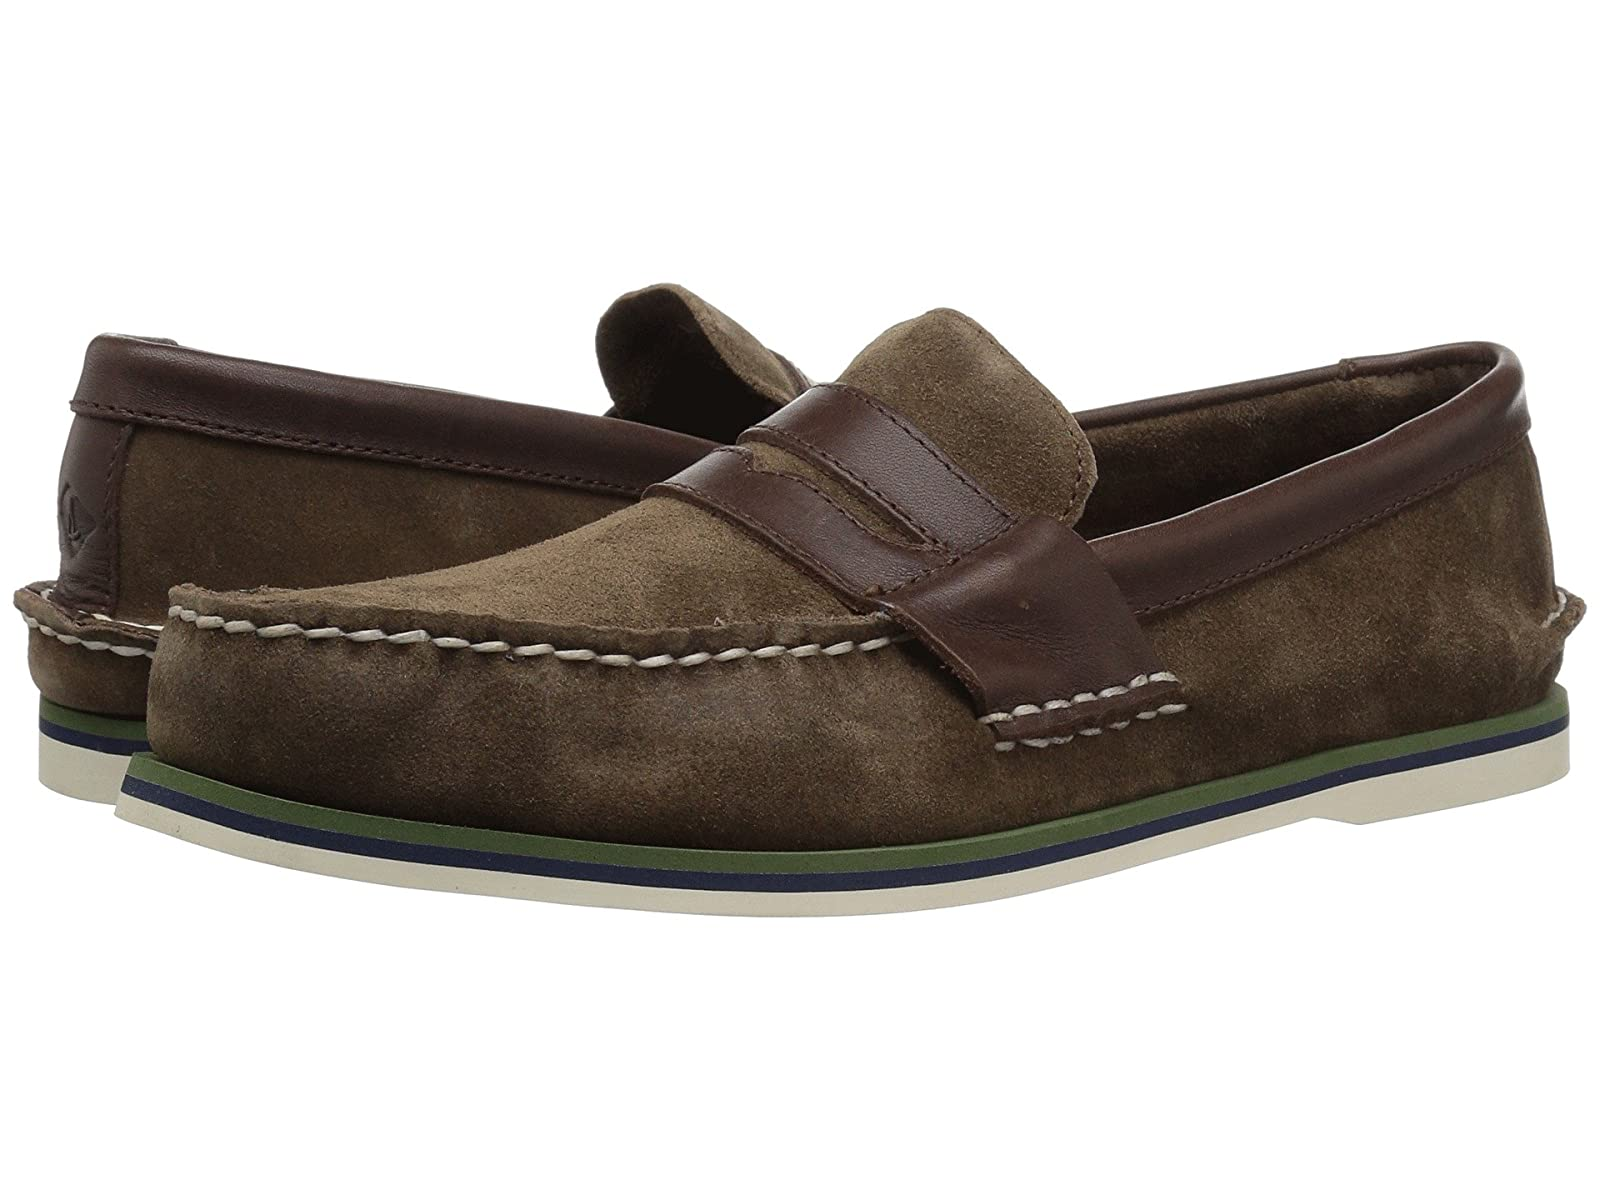 Sperry A/O Penny NauticalAtmospheric grades have affordable shoes